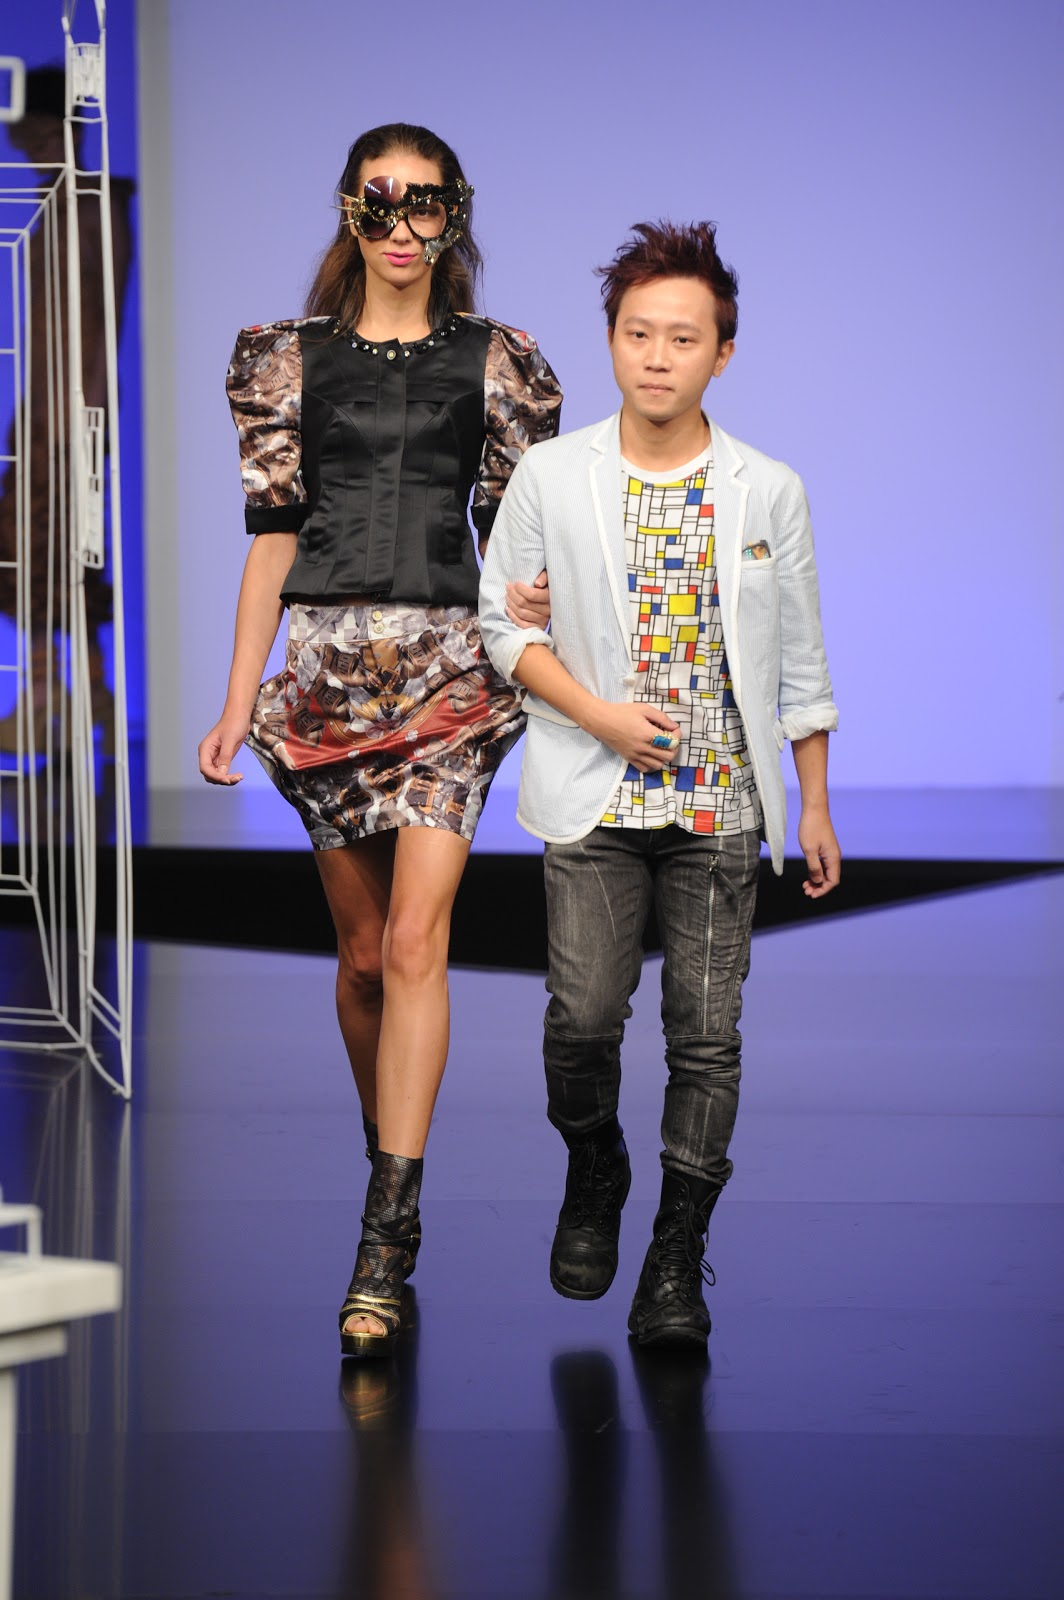 ... from the three most recent Hong Kong Young Fashion Designers' Contest ...